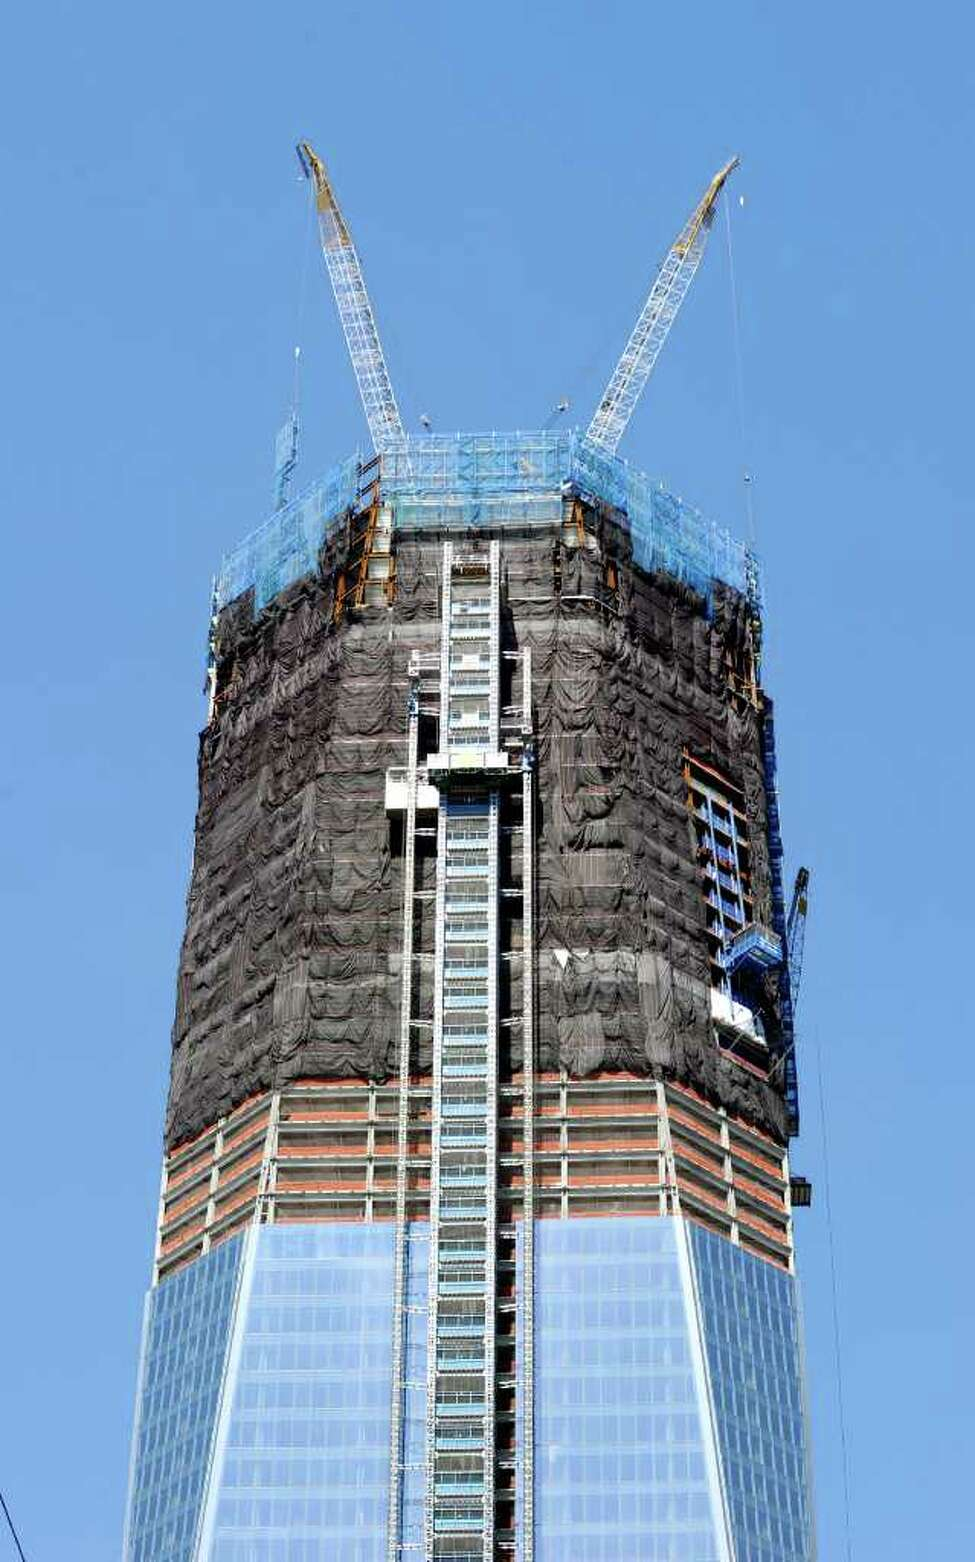 The Freedom Tower, also known as One World Trade Center, New York City, Thursday, Aug. 11, 2011, under construction a month before the 10th anniversary of 9/11. ( Bob Luckey / Hearst Newspapers )